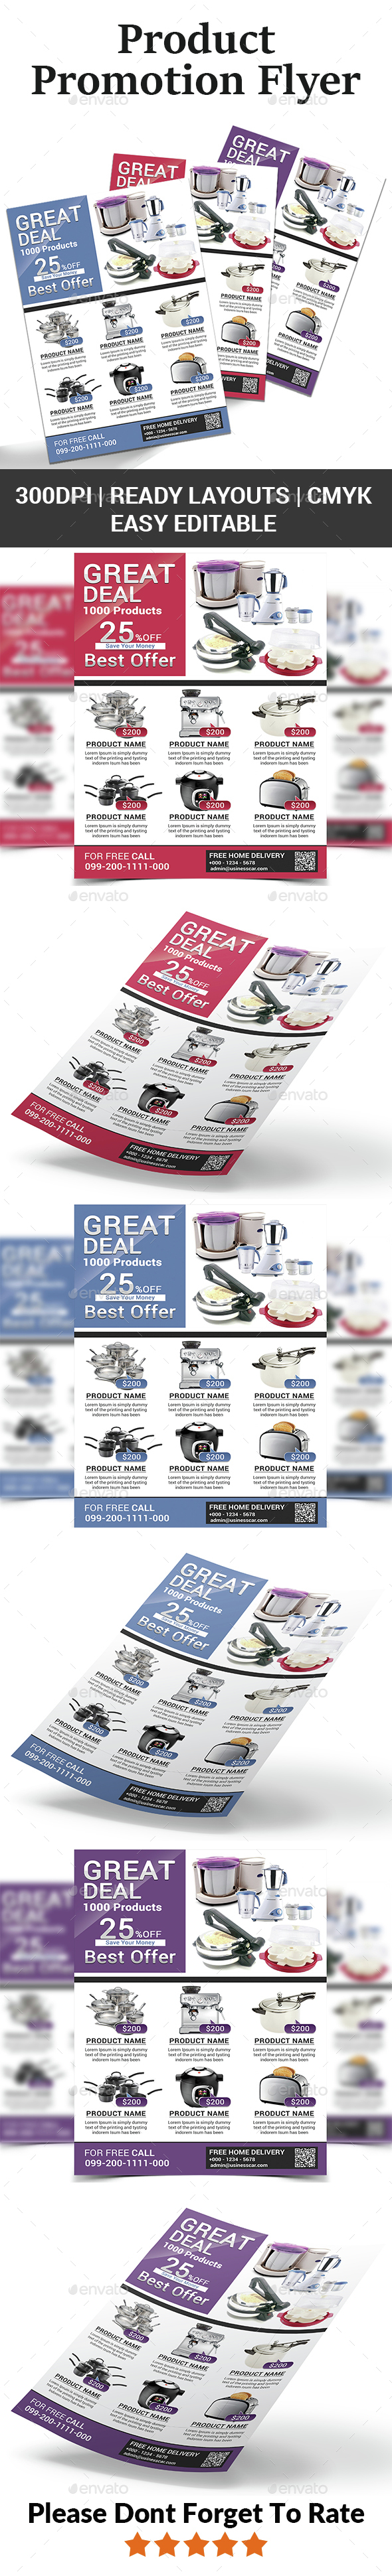 Product Promotion Flyer - Corporate Flyers